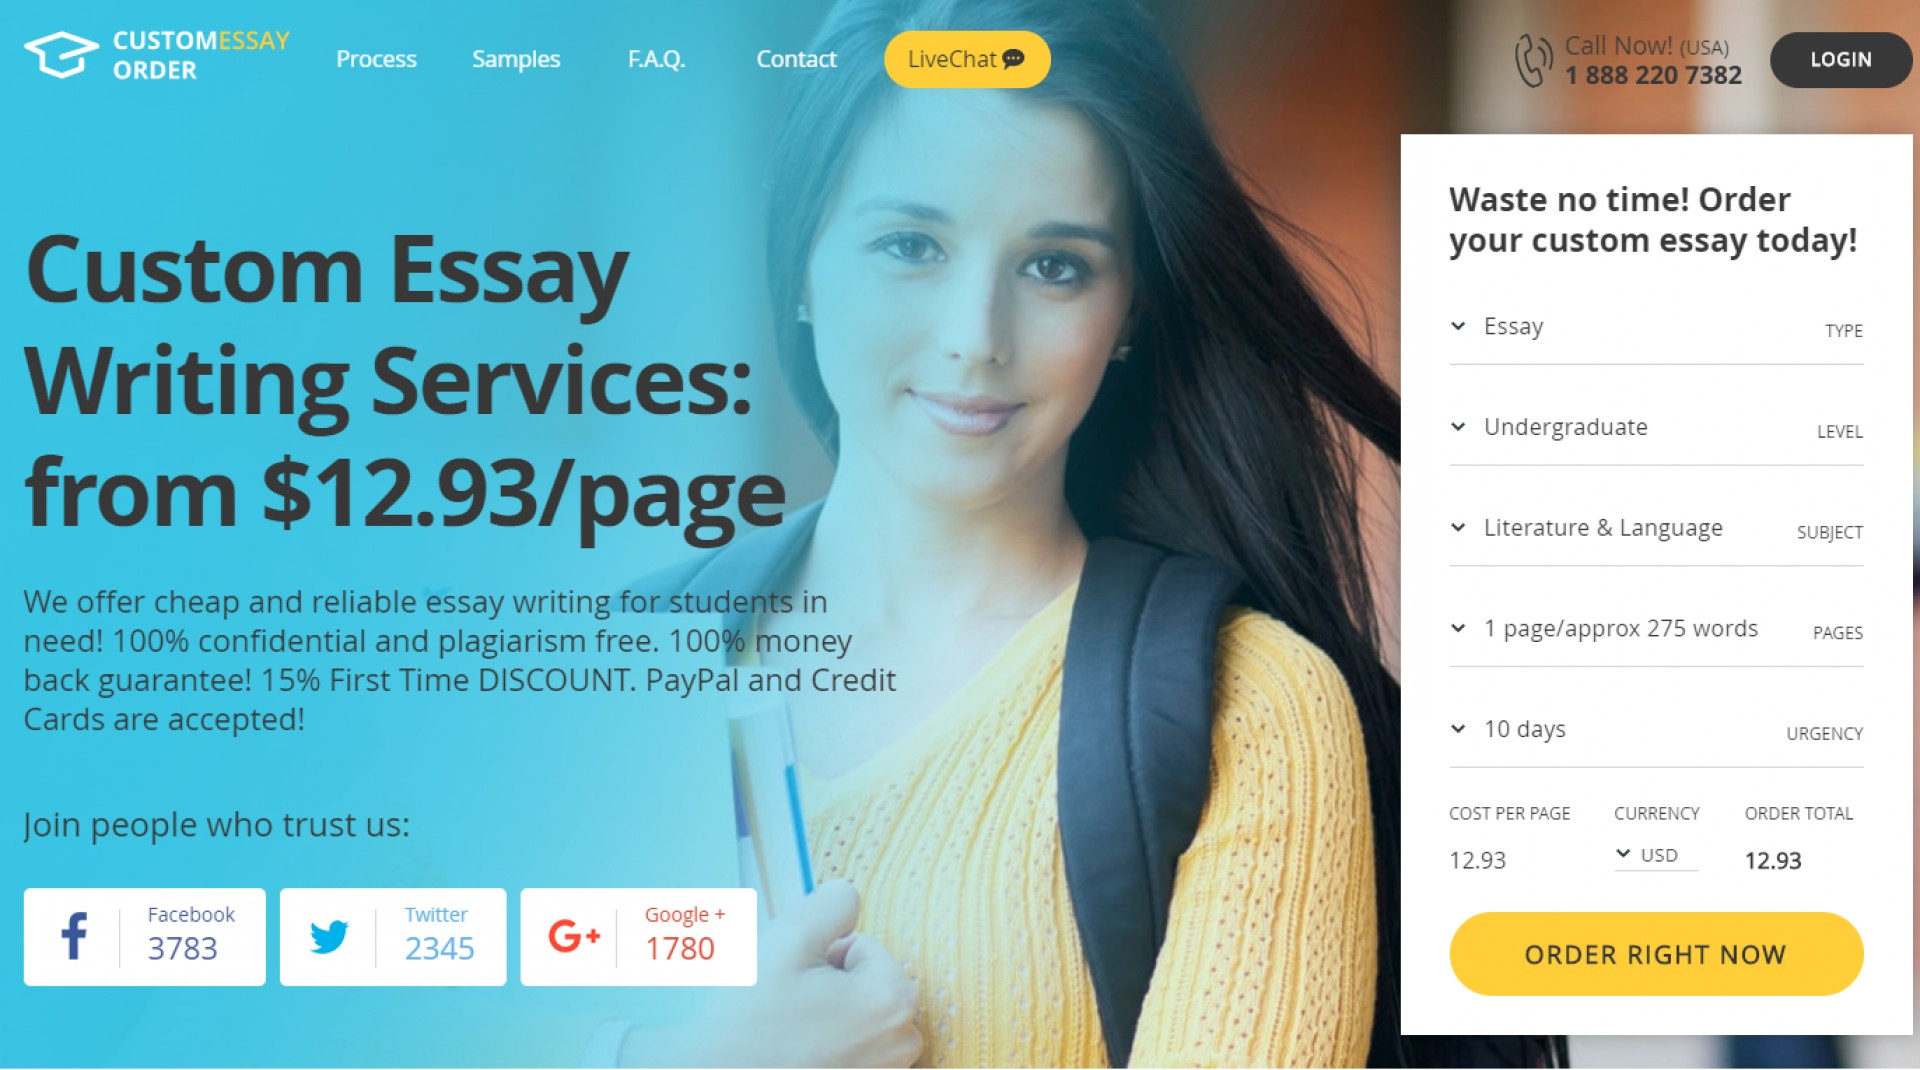 014 Custom Essay Writing Services Customessayorder Com Review Is It Online Service R Best Reviews Impressive In India Australia 1920